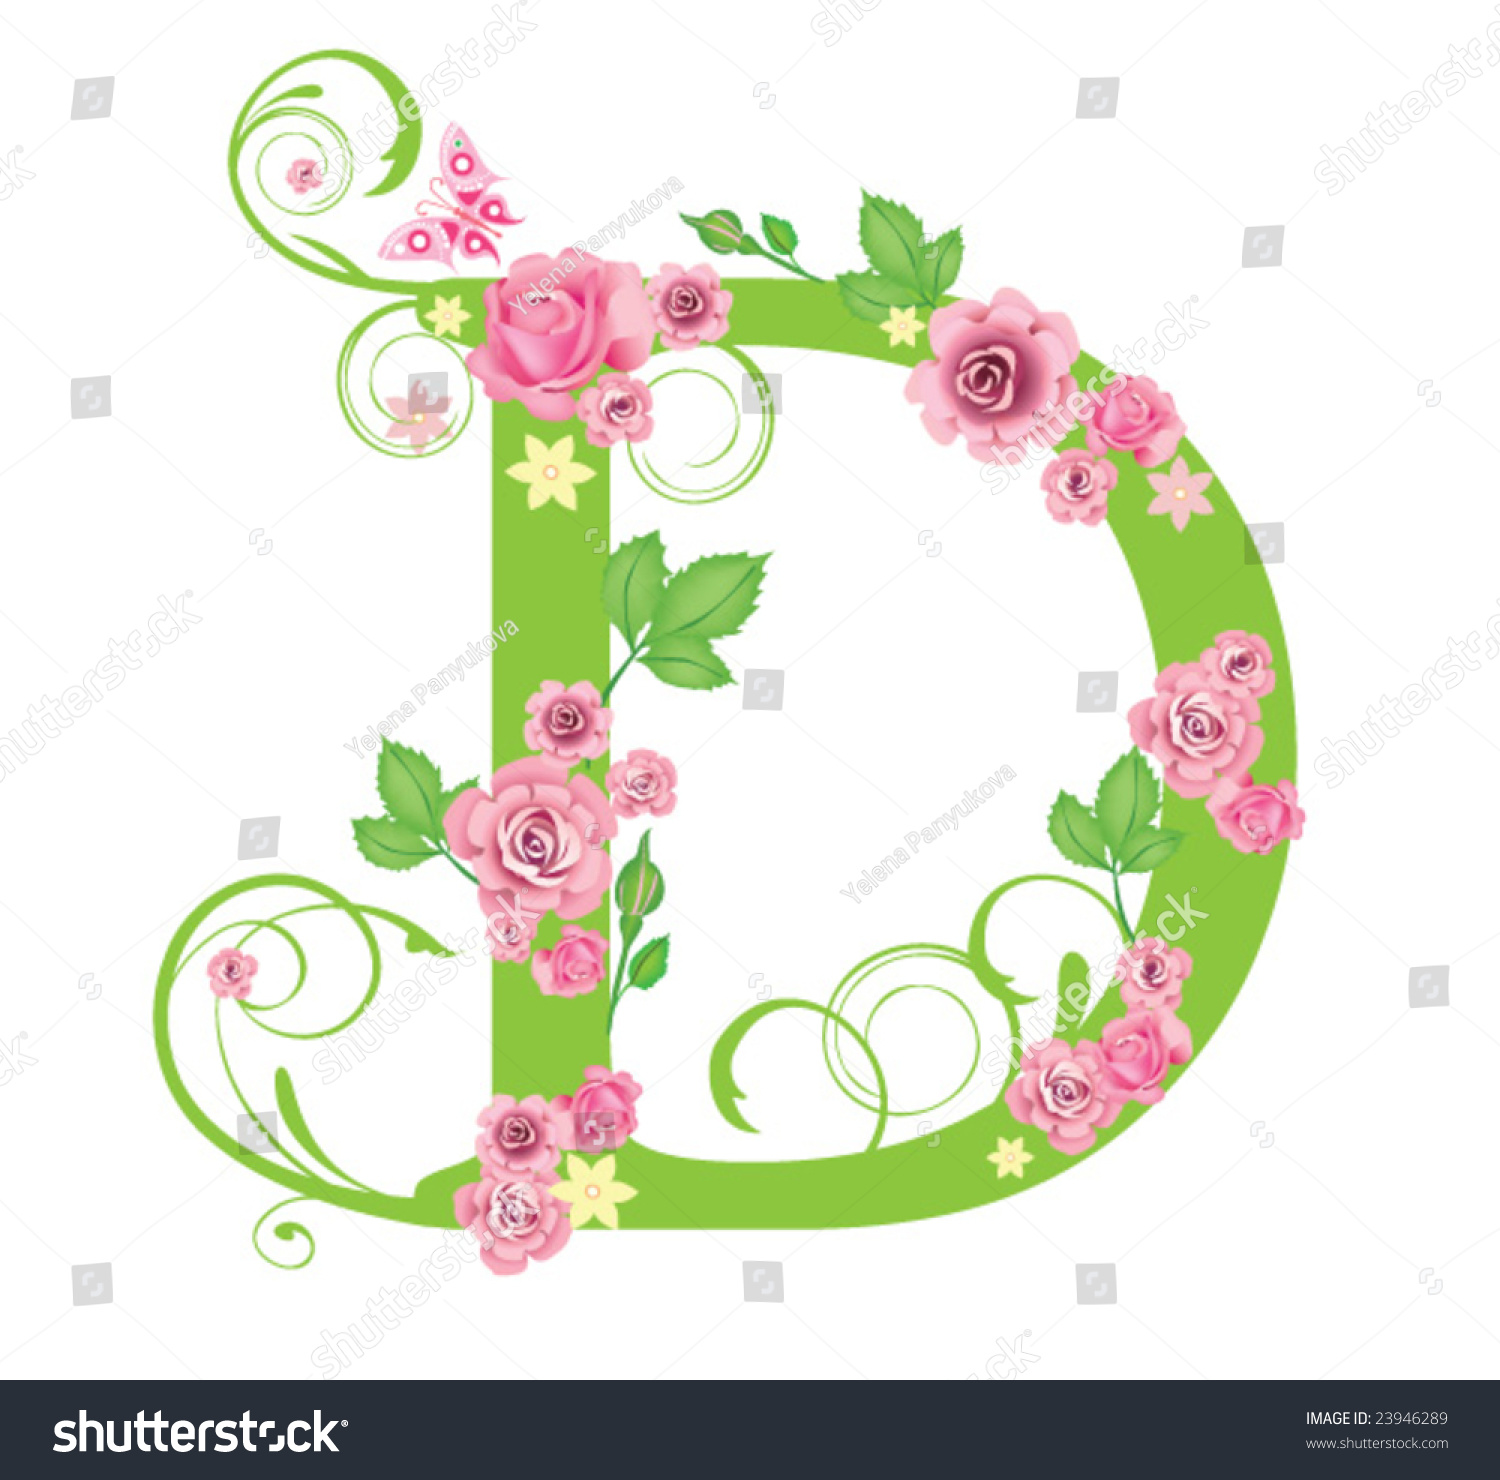 Letter D With Roses For Design